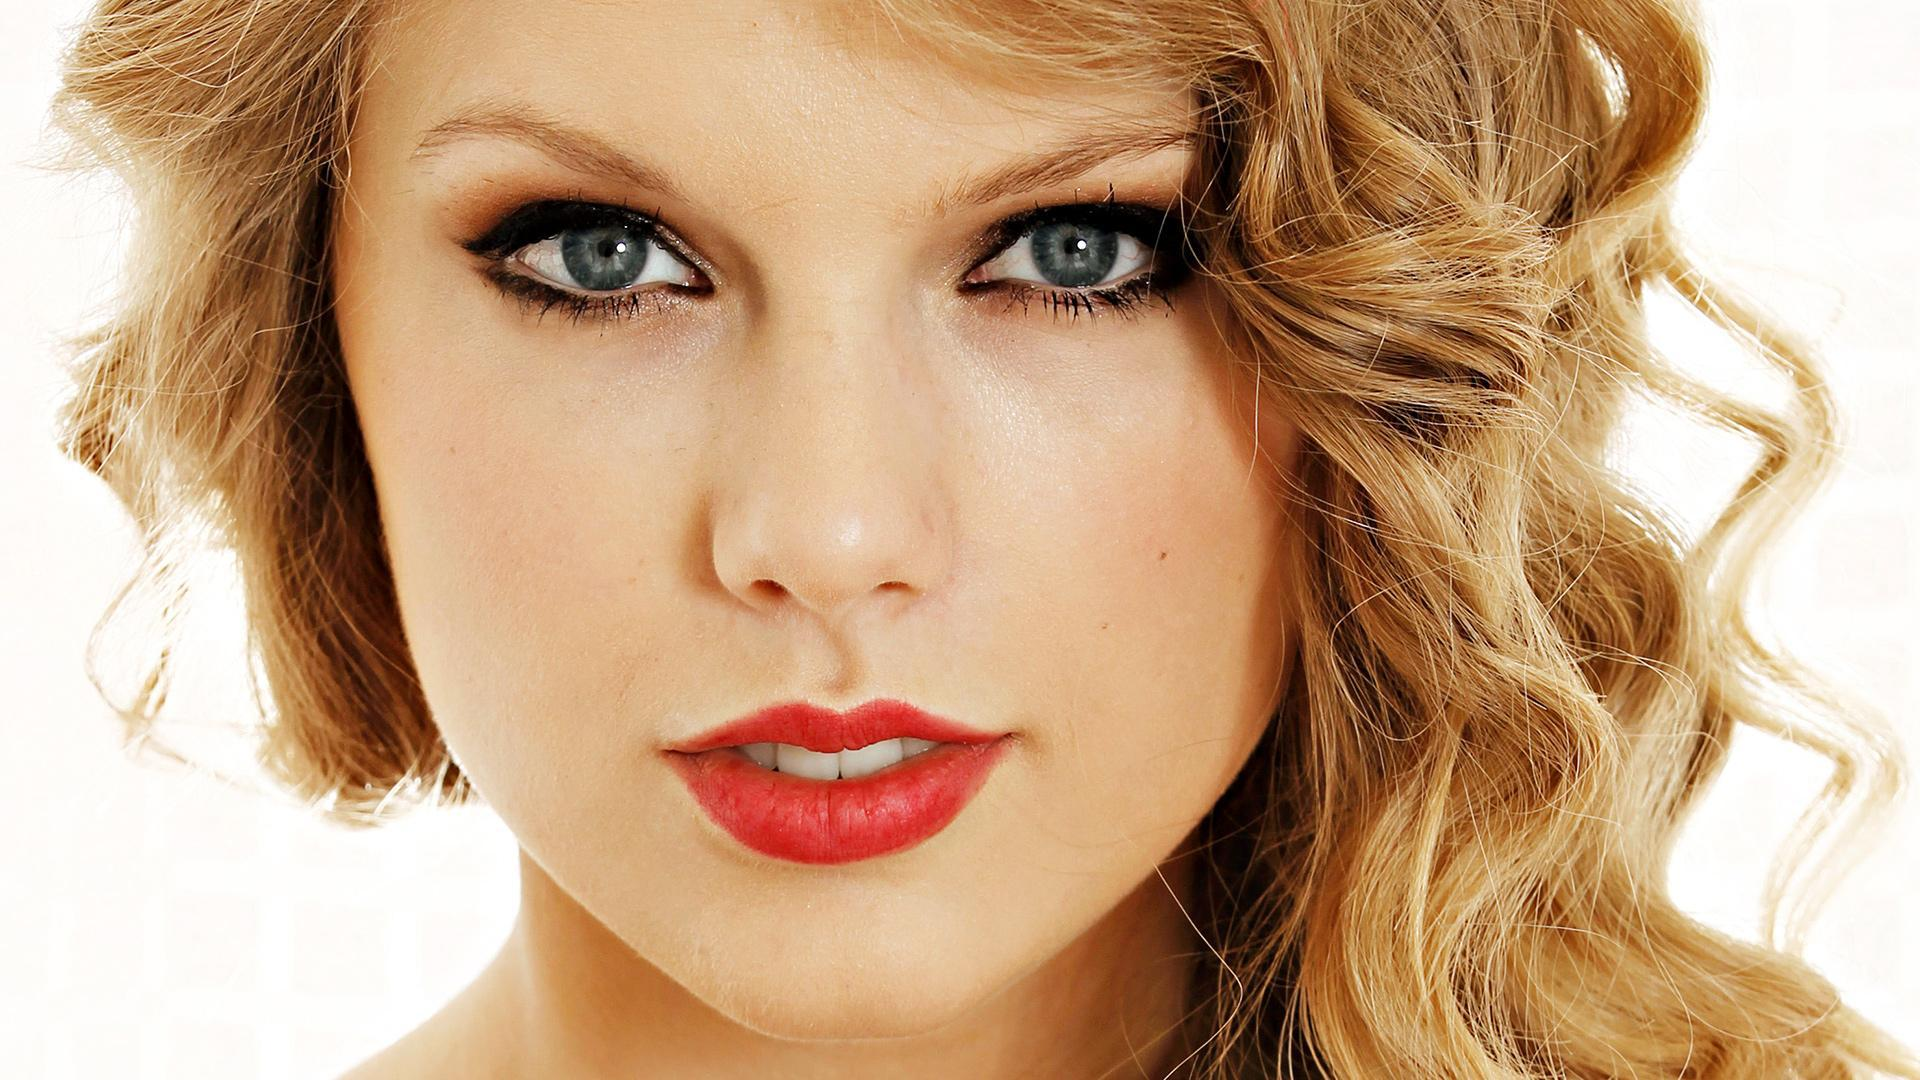 How well do you know Taylor Swift?